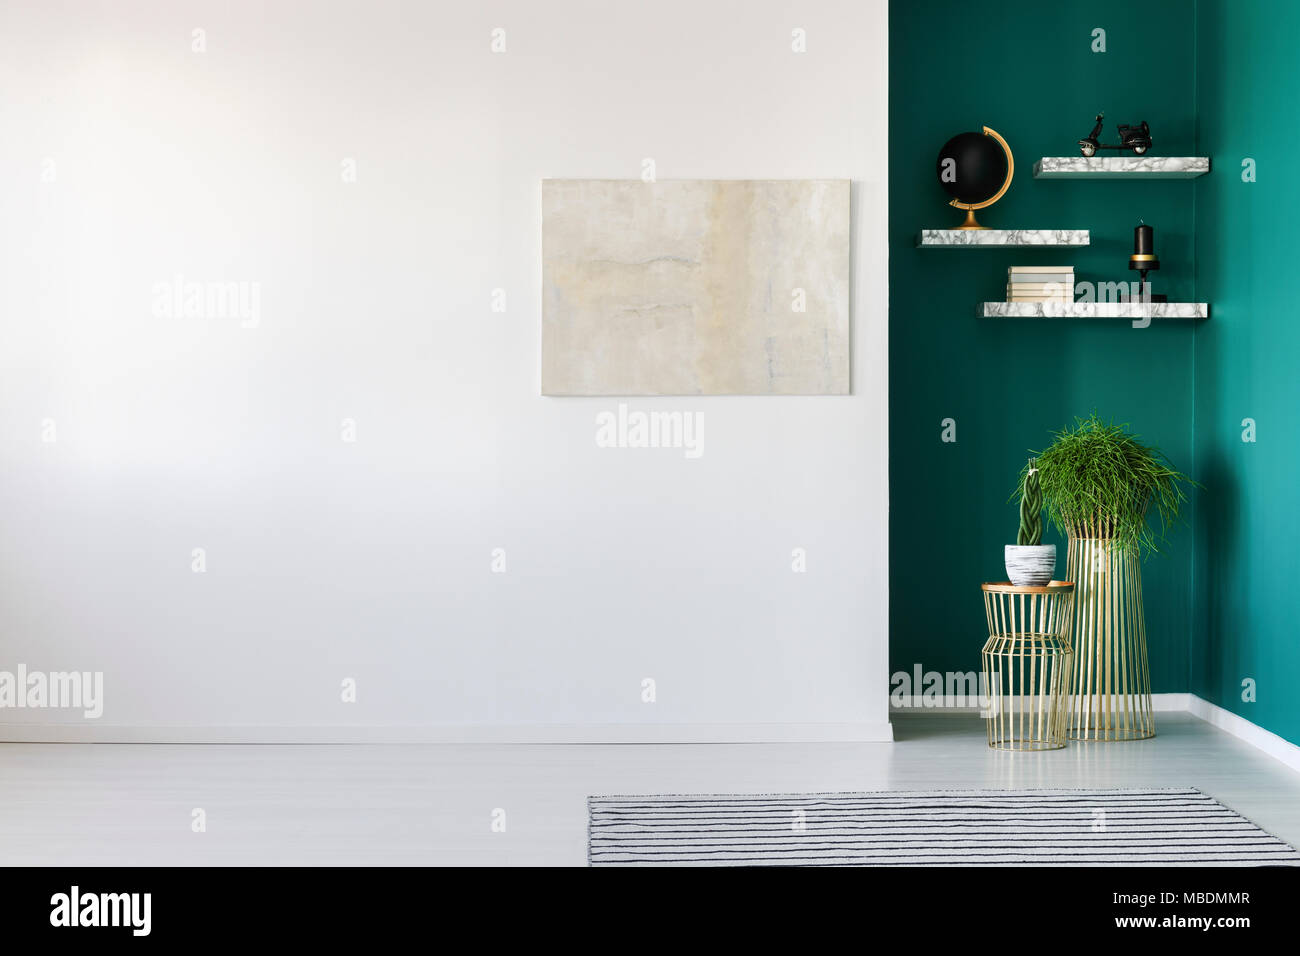 Bright painting on white wall and plants against green wall in ...